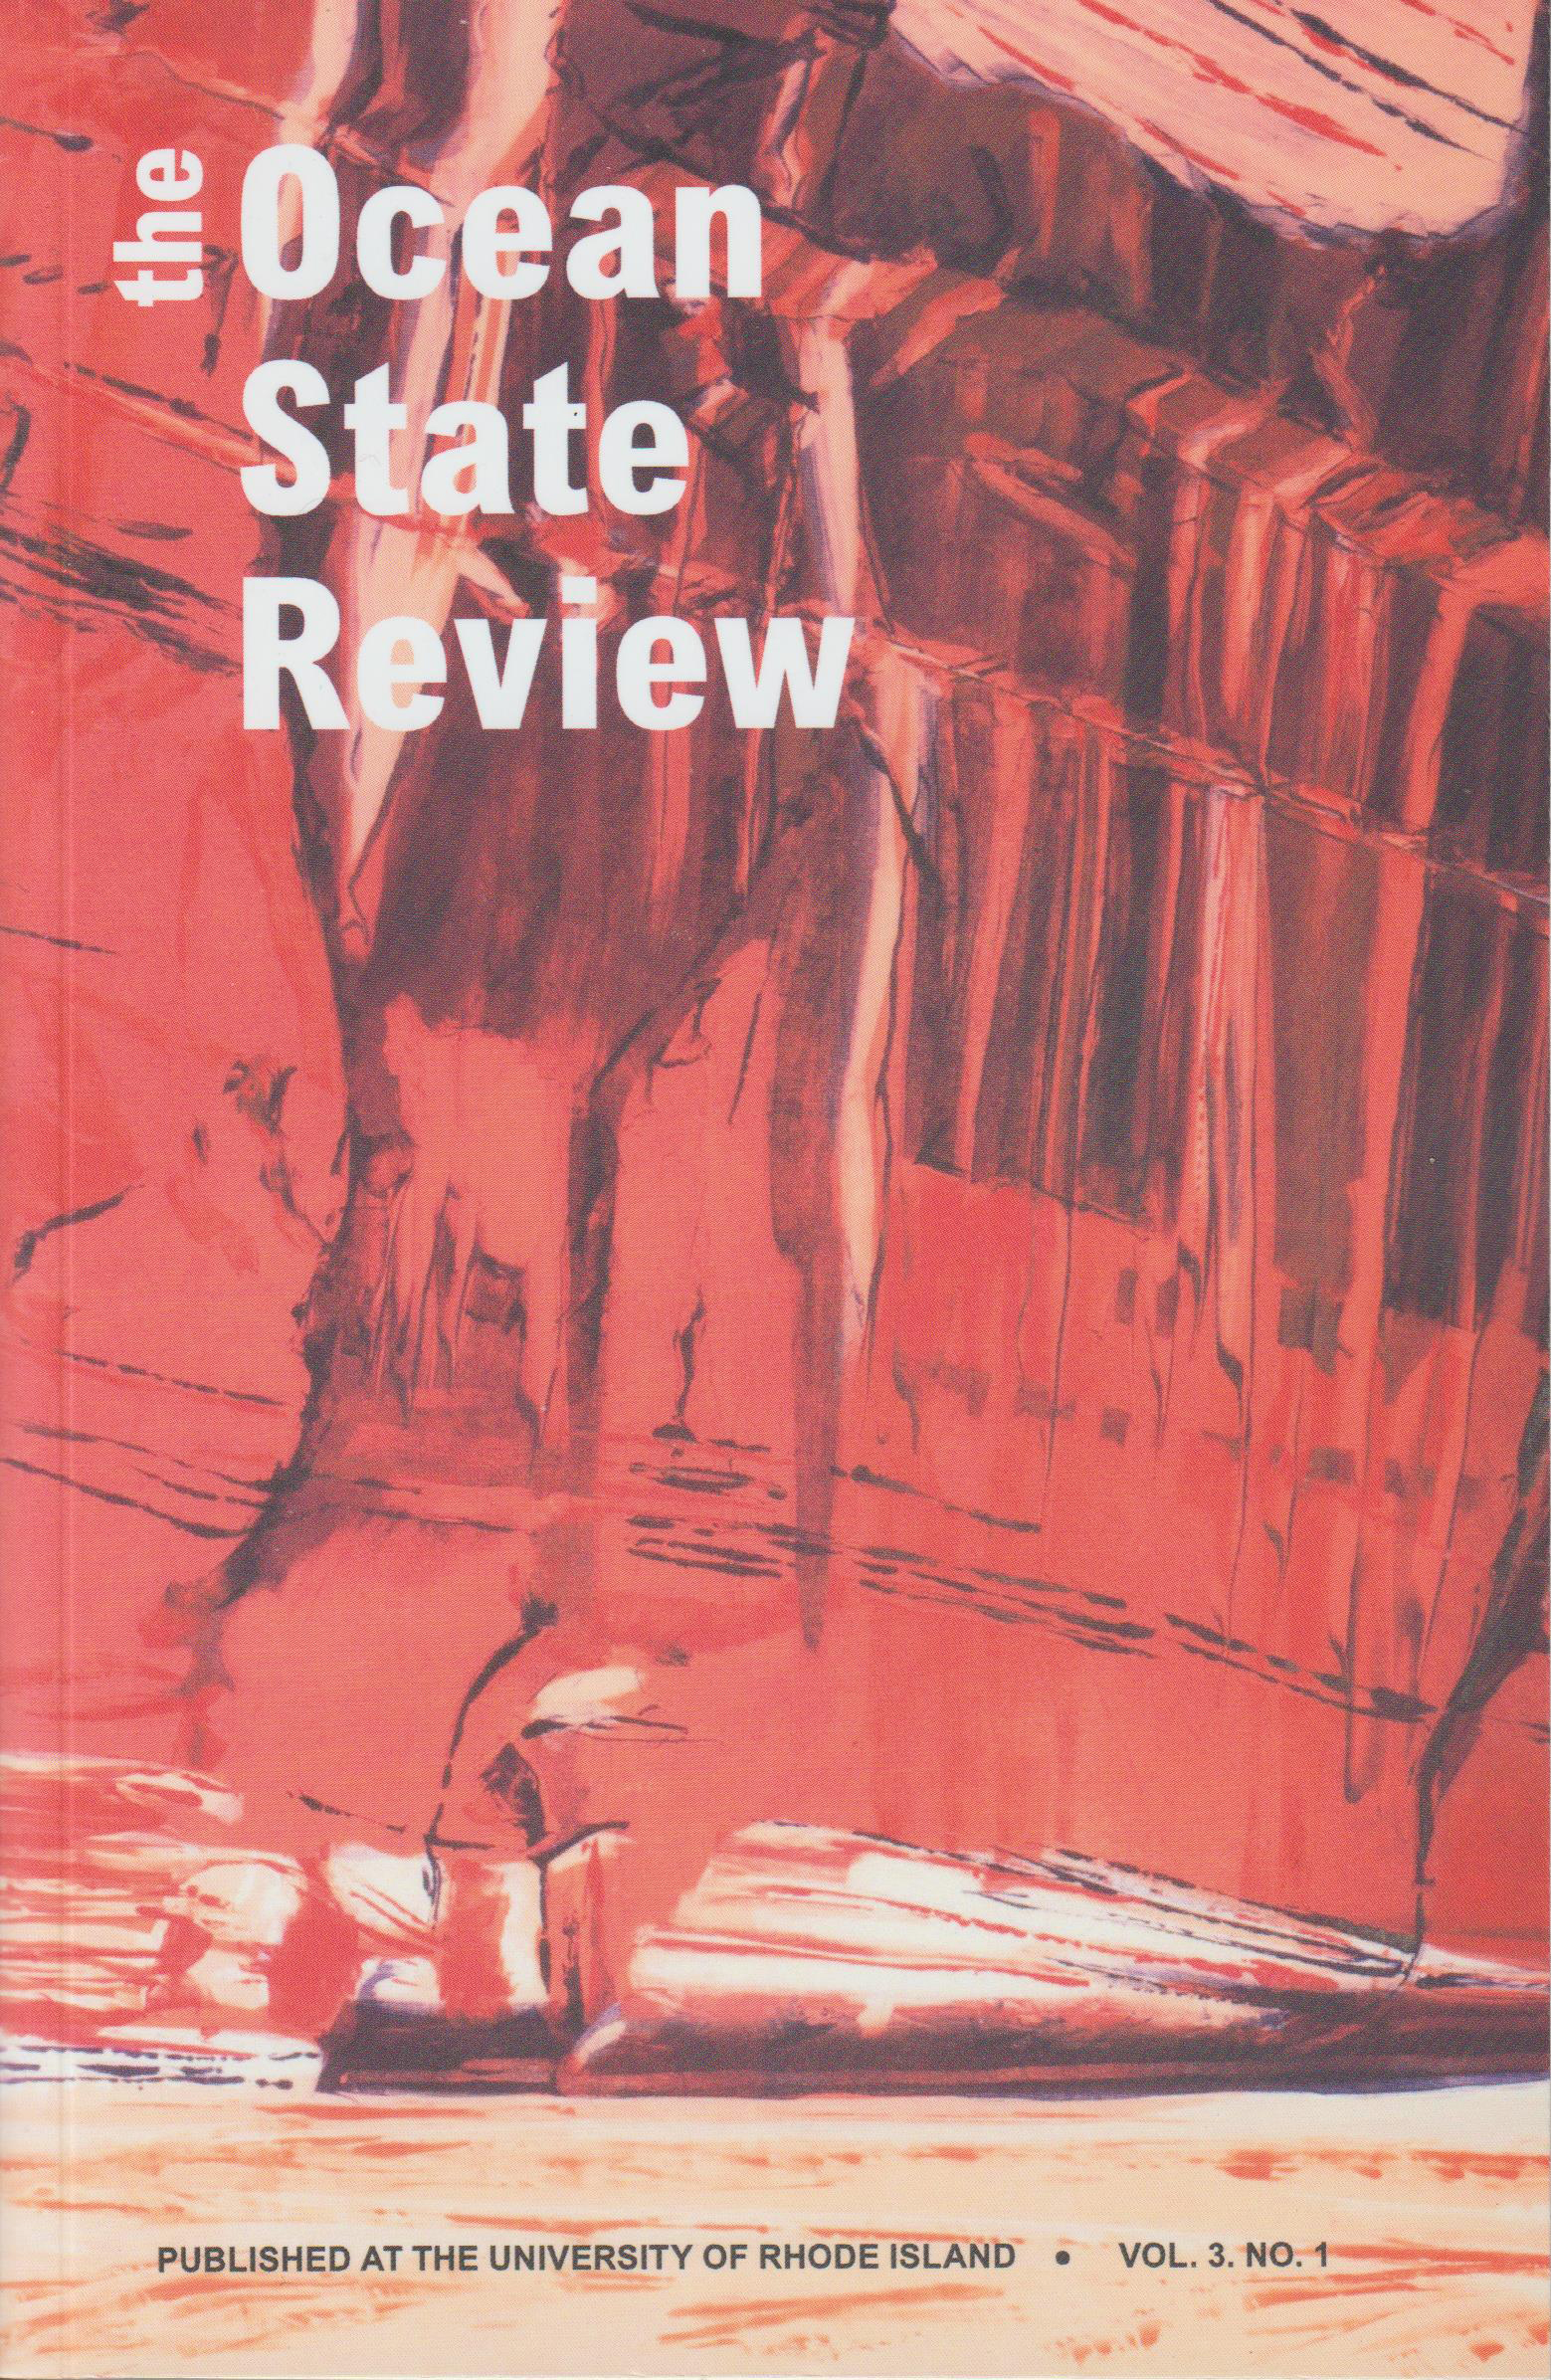 The Ocean State Review Vol. 3 No. 1